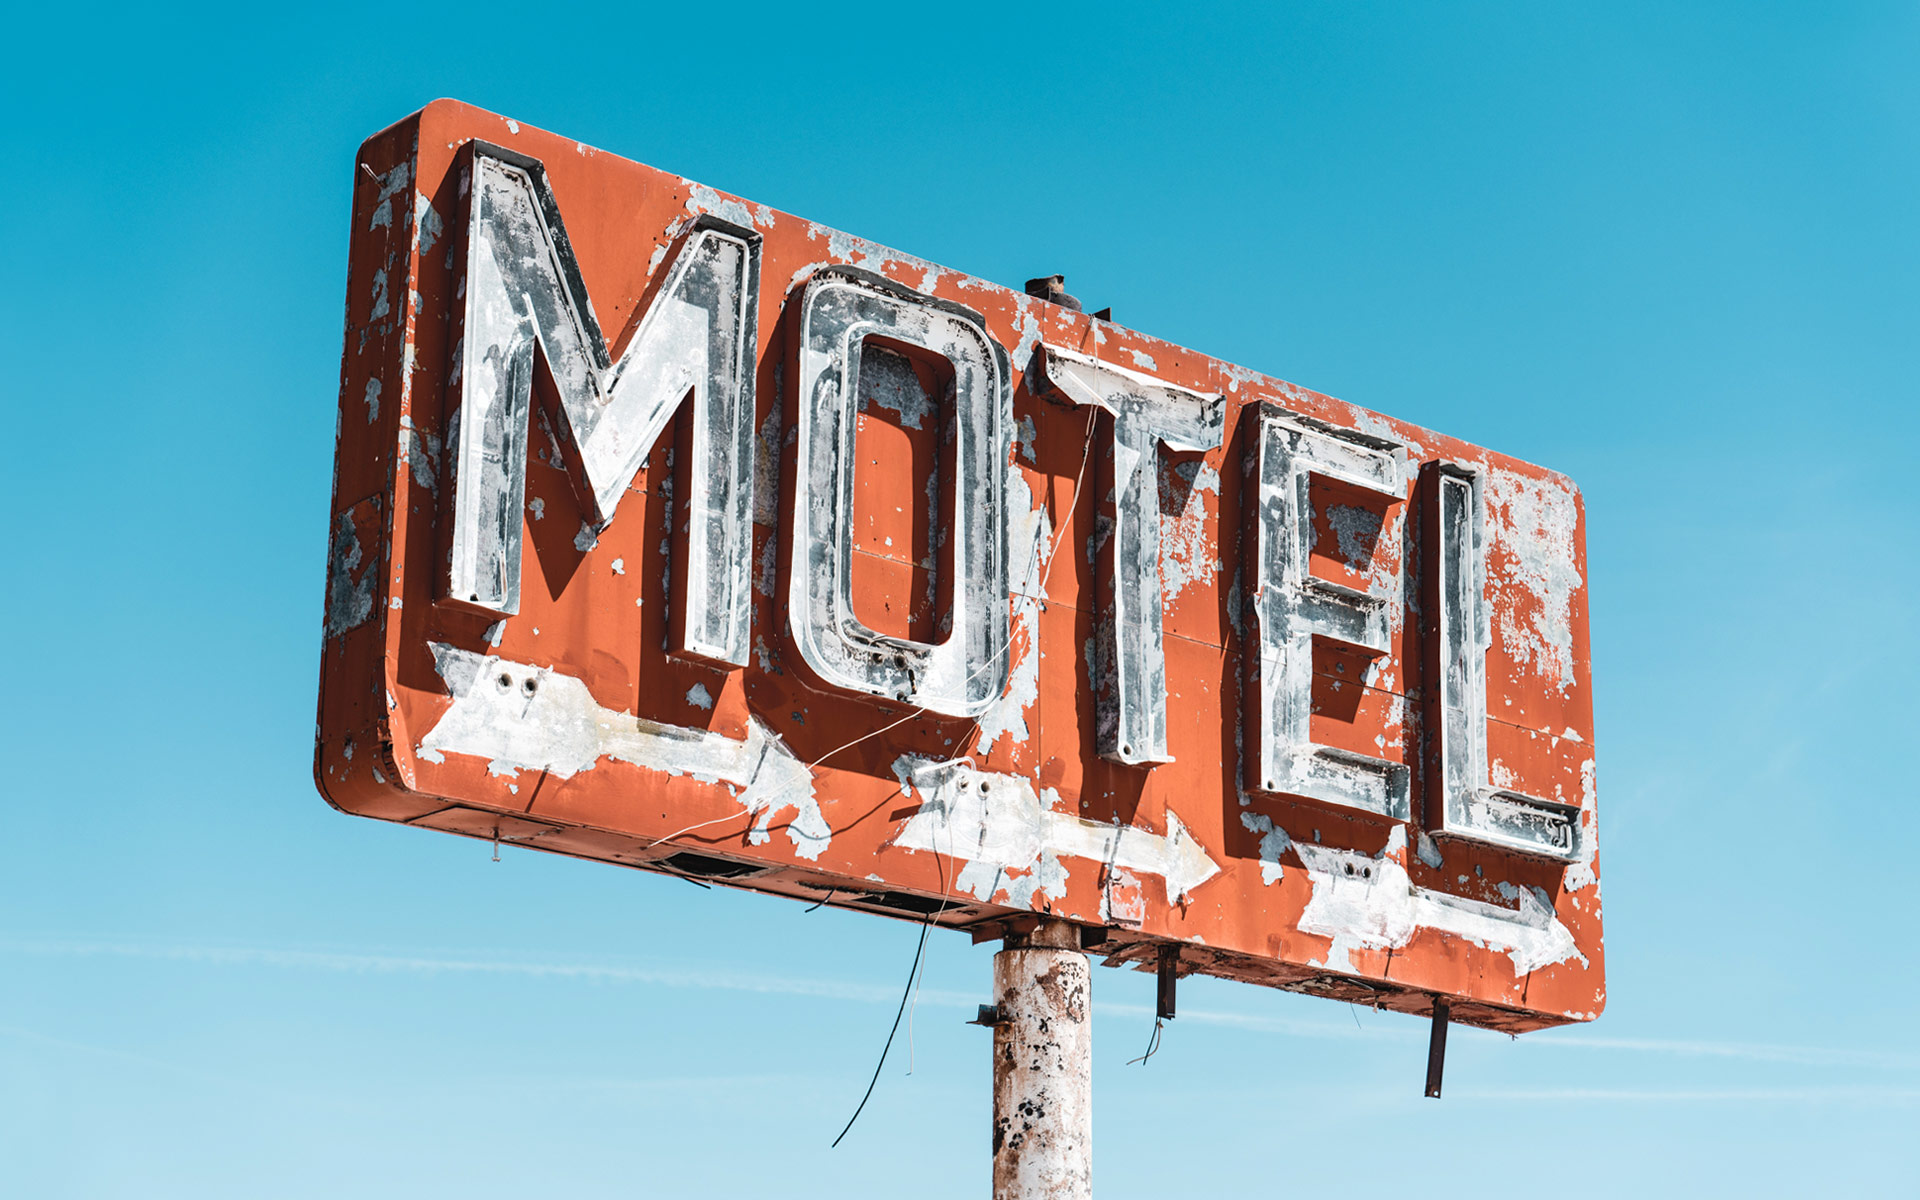 A rusty orange sign with white letters that read: MOTEL, against a blue sky.